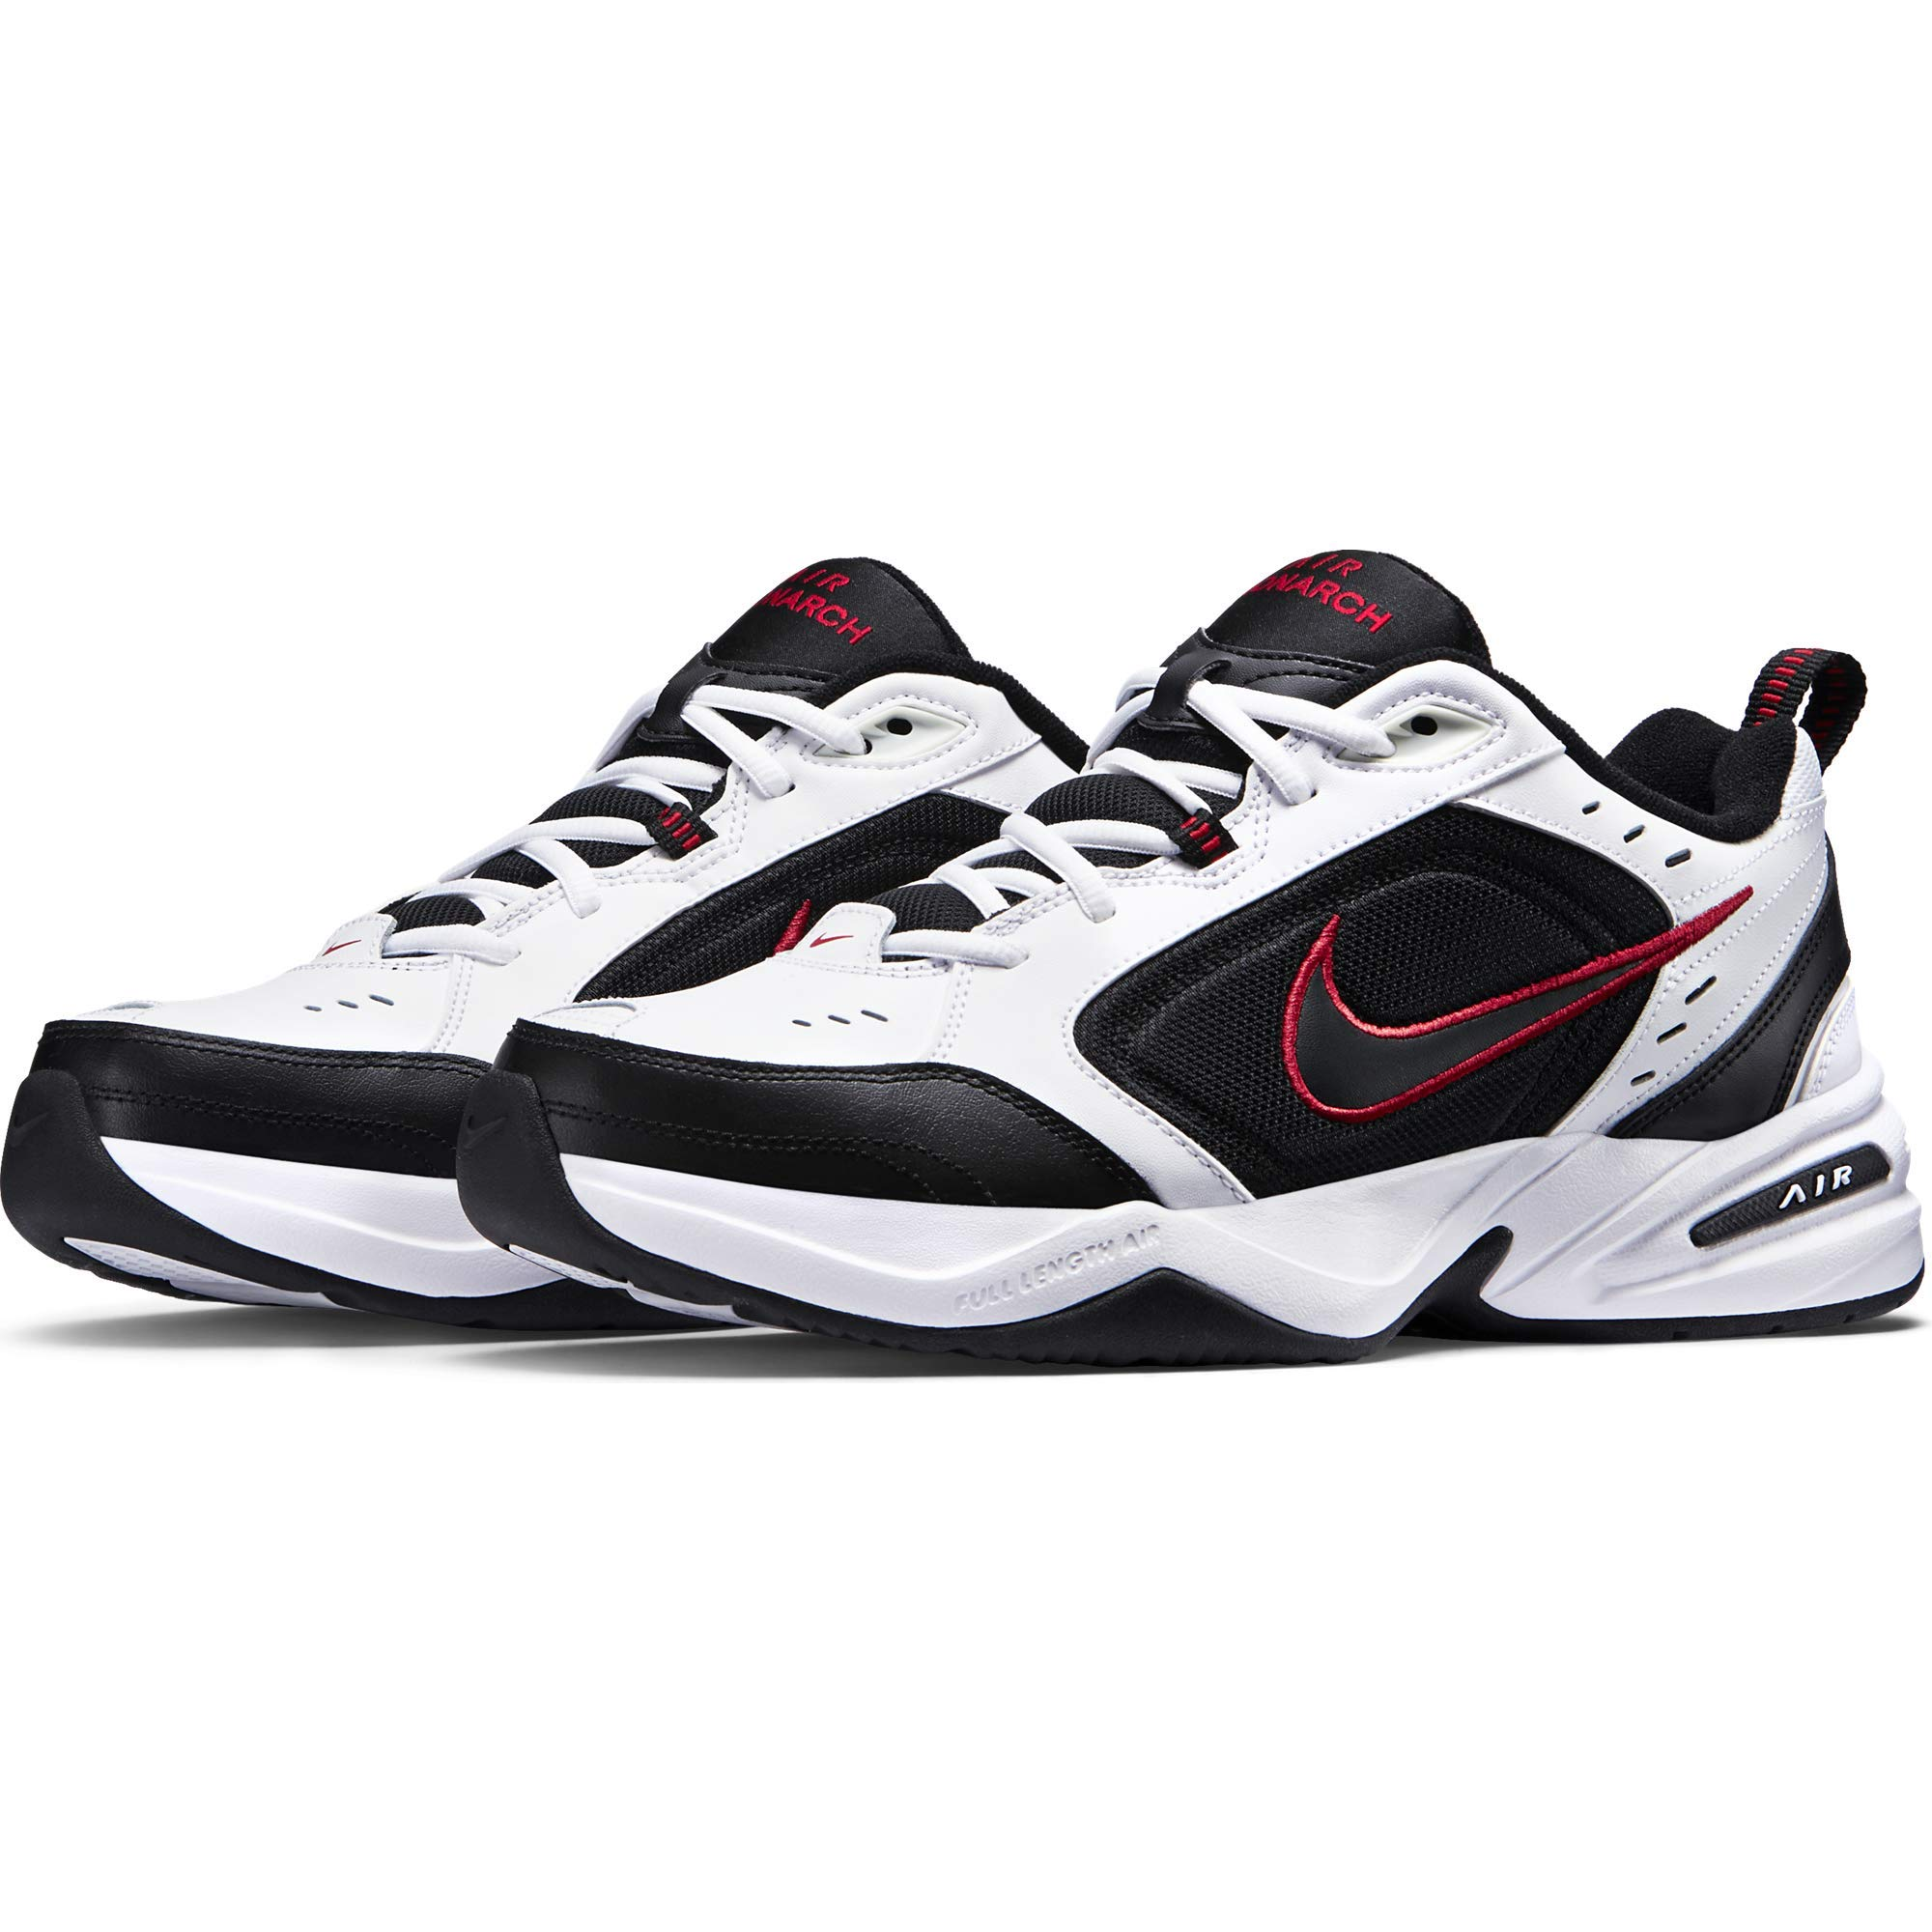 Nike Men's Air Monarch IV Cross Trainer, White/Black, 6.0 Regular US by Nike